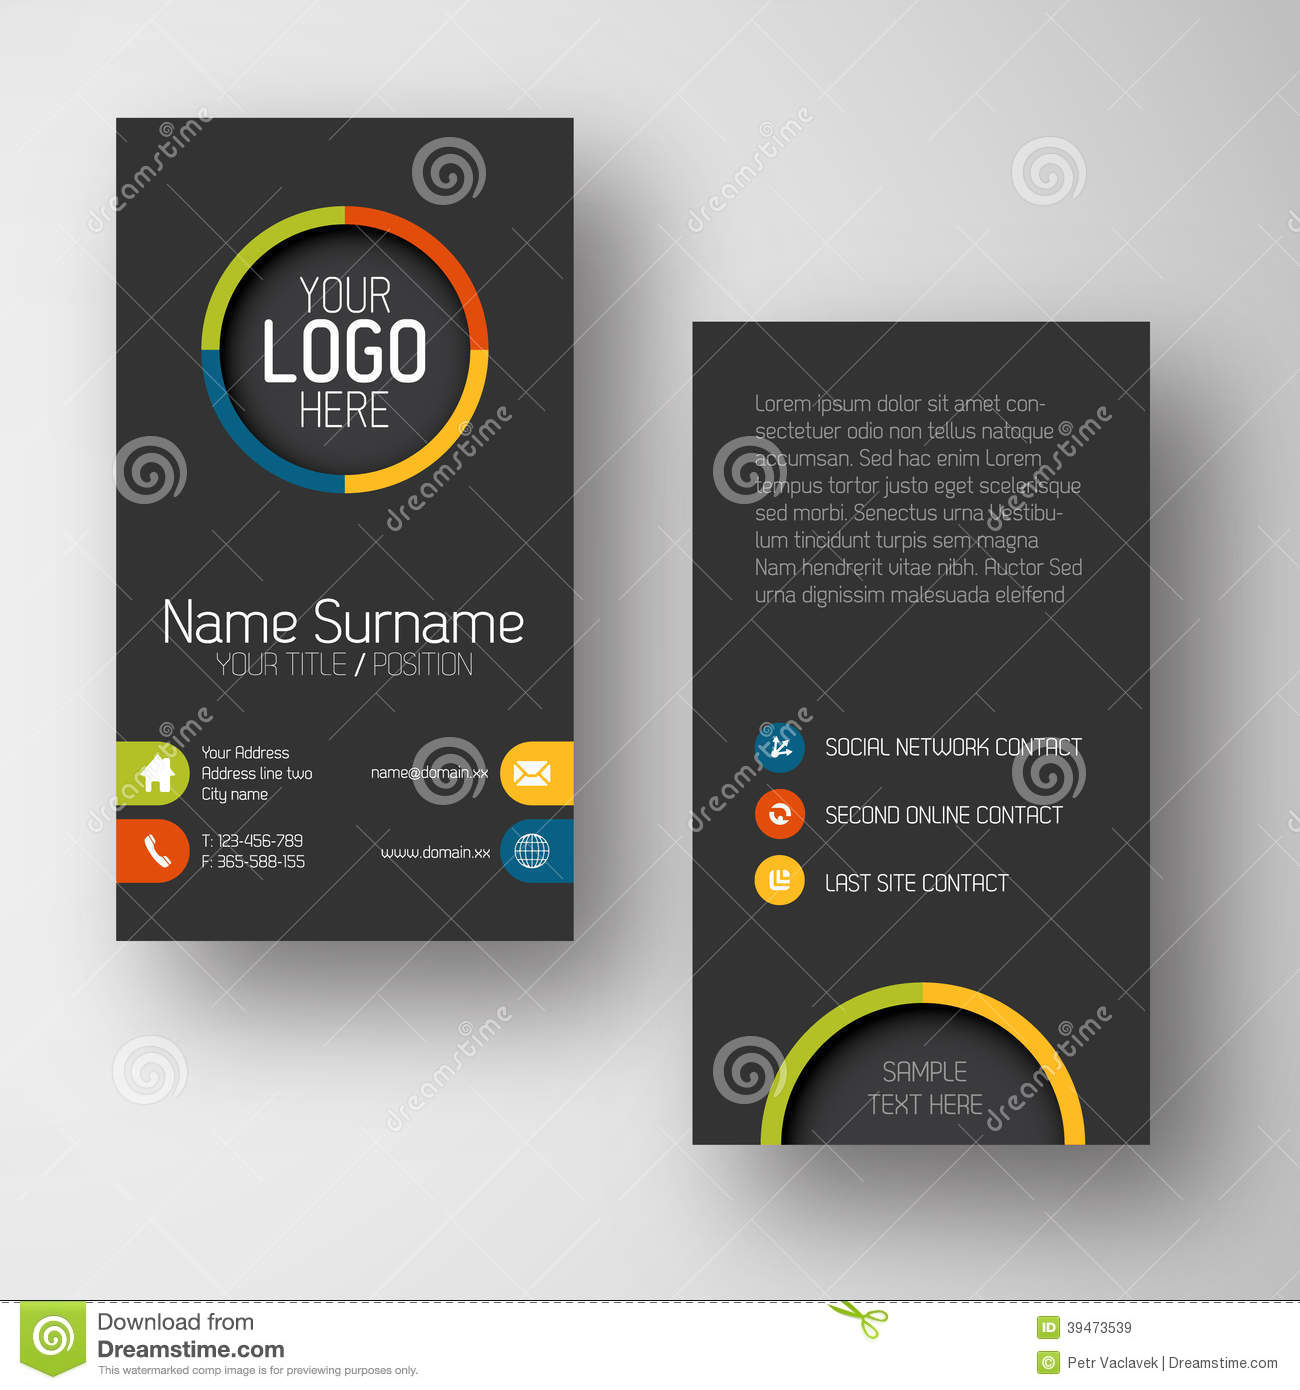 Modern dark vertical business card template with flat user interface download comp flashek Image collections